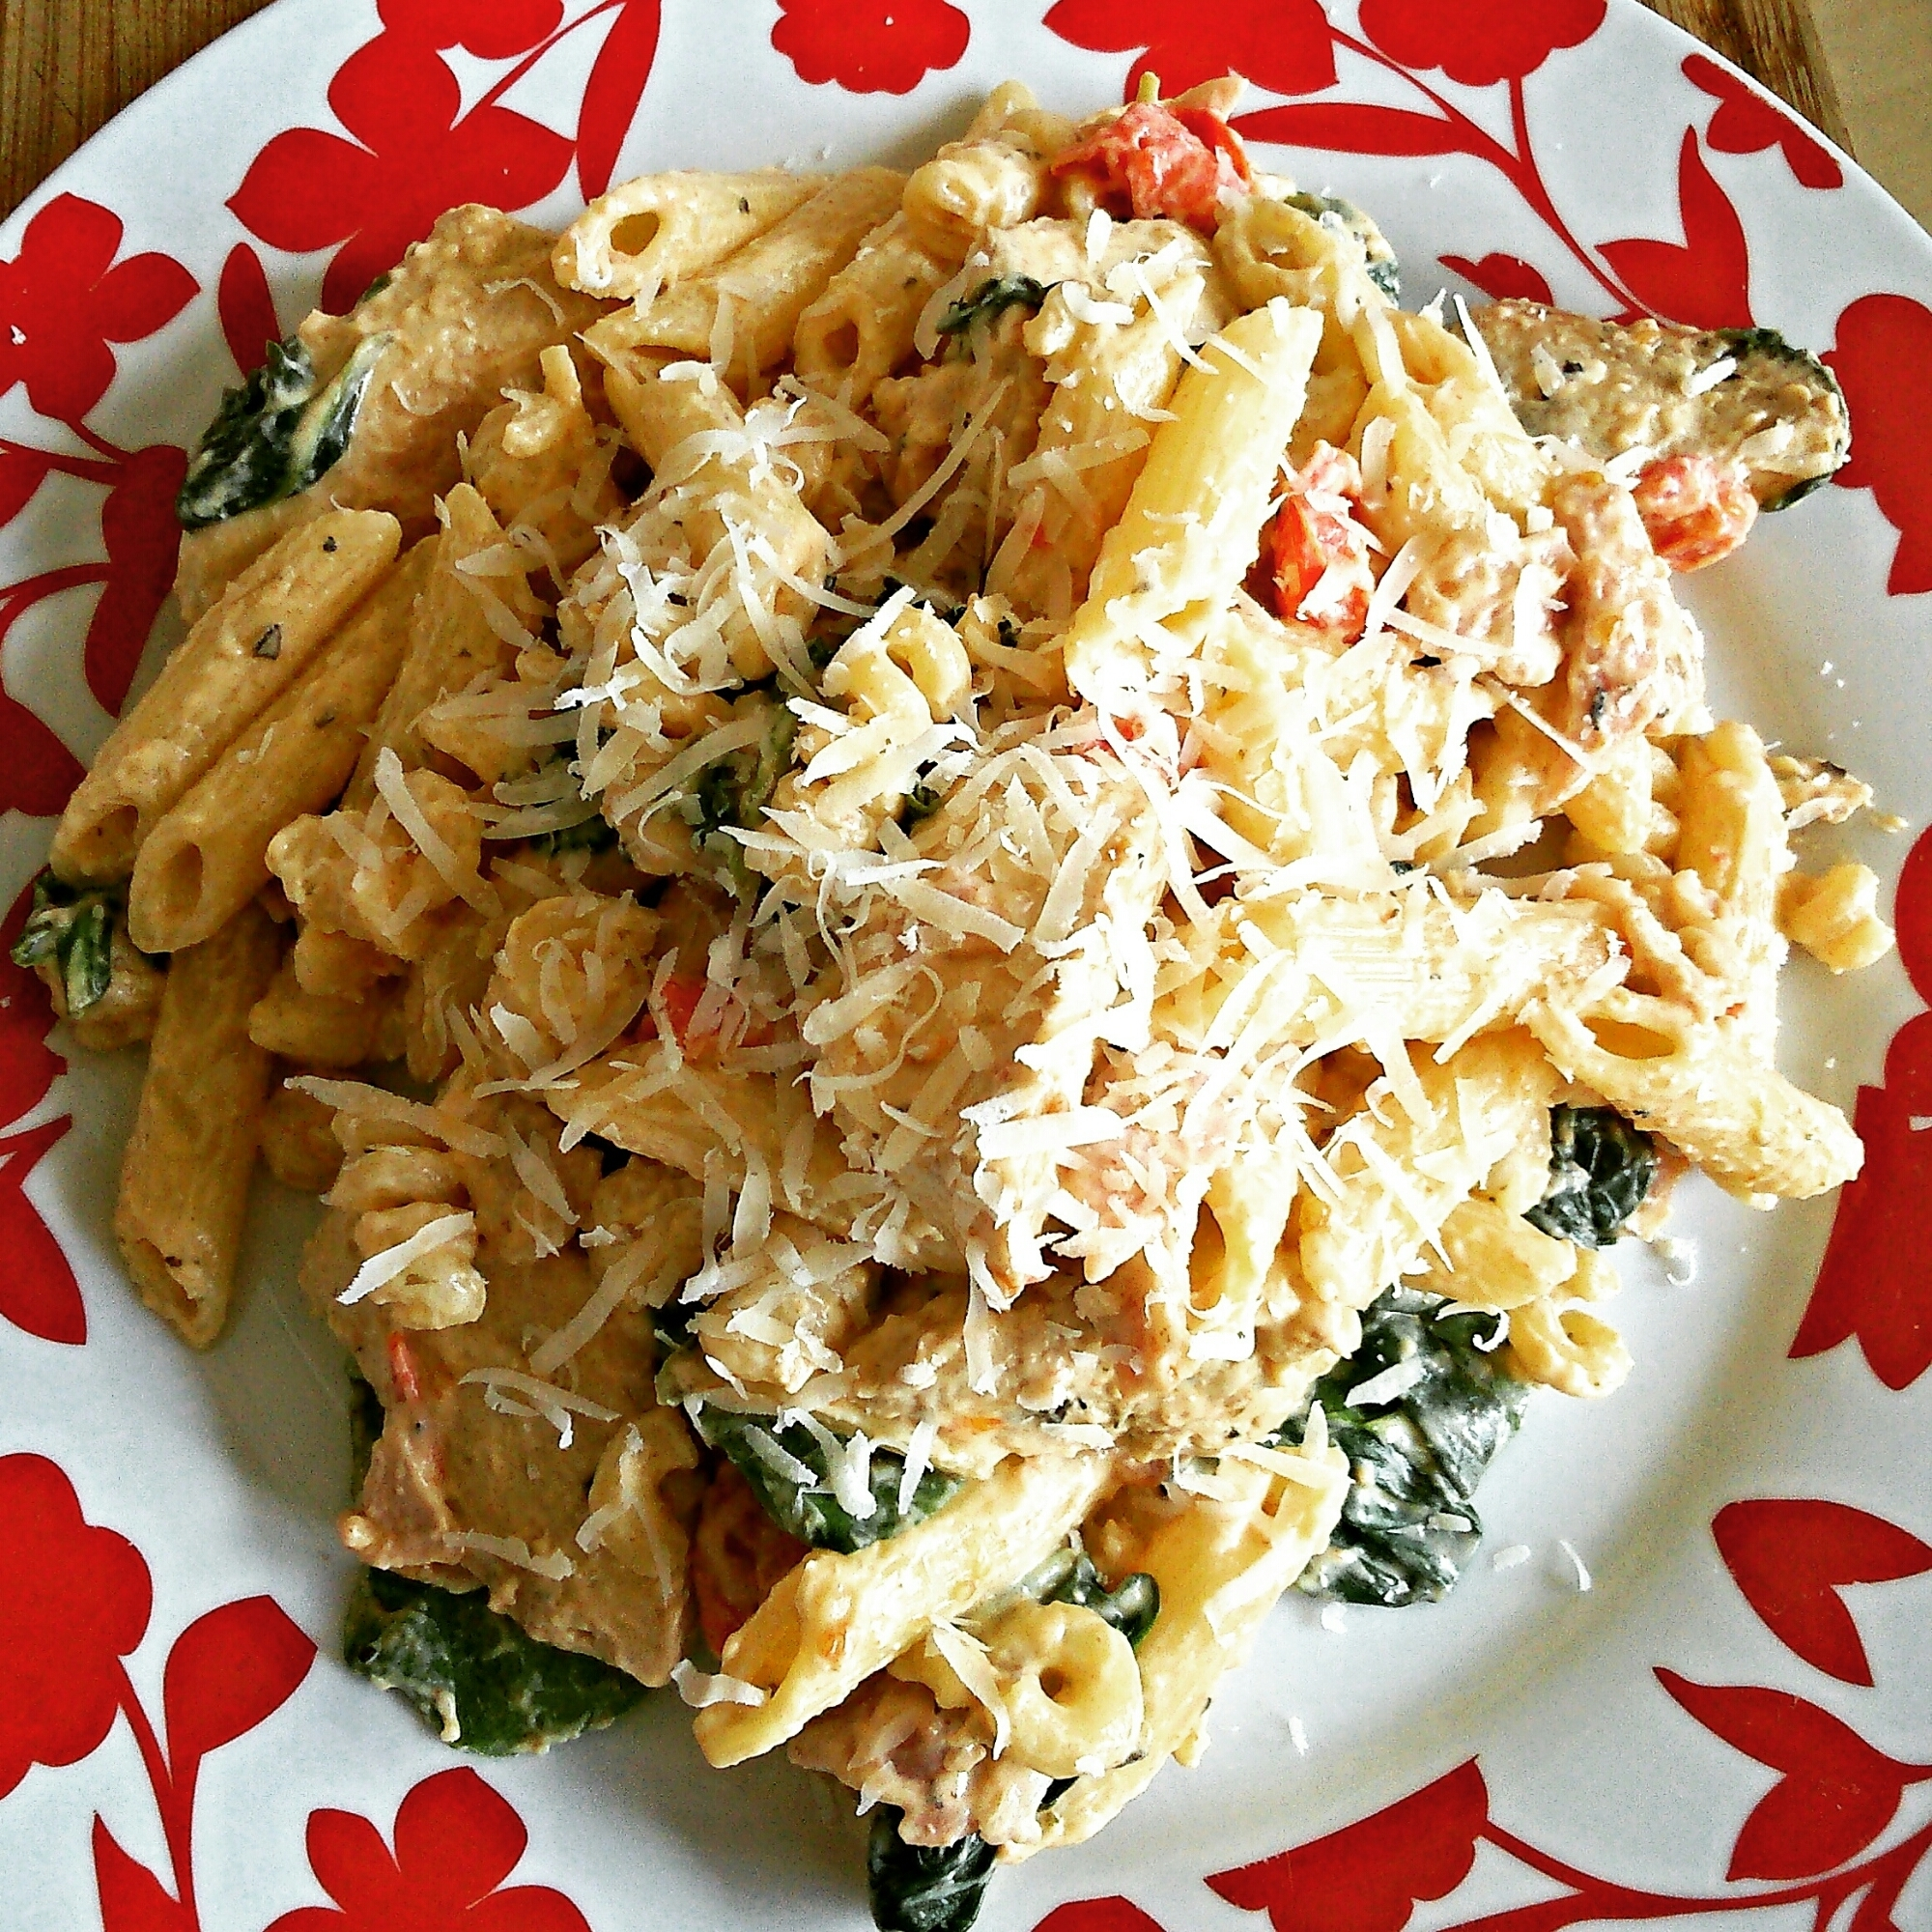 Creamy chicken, bacon and spinach pasta